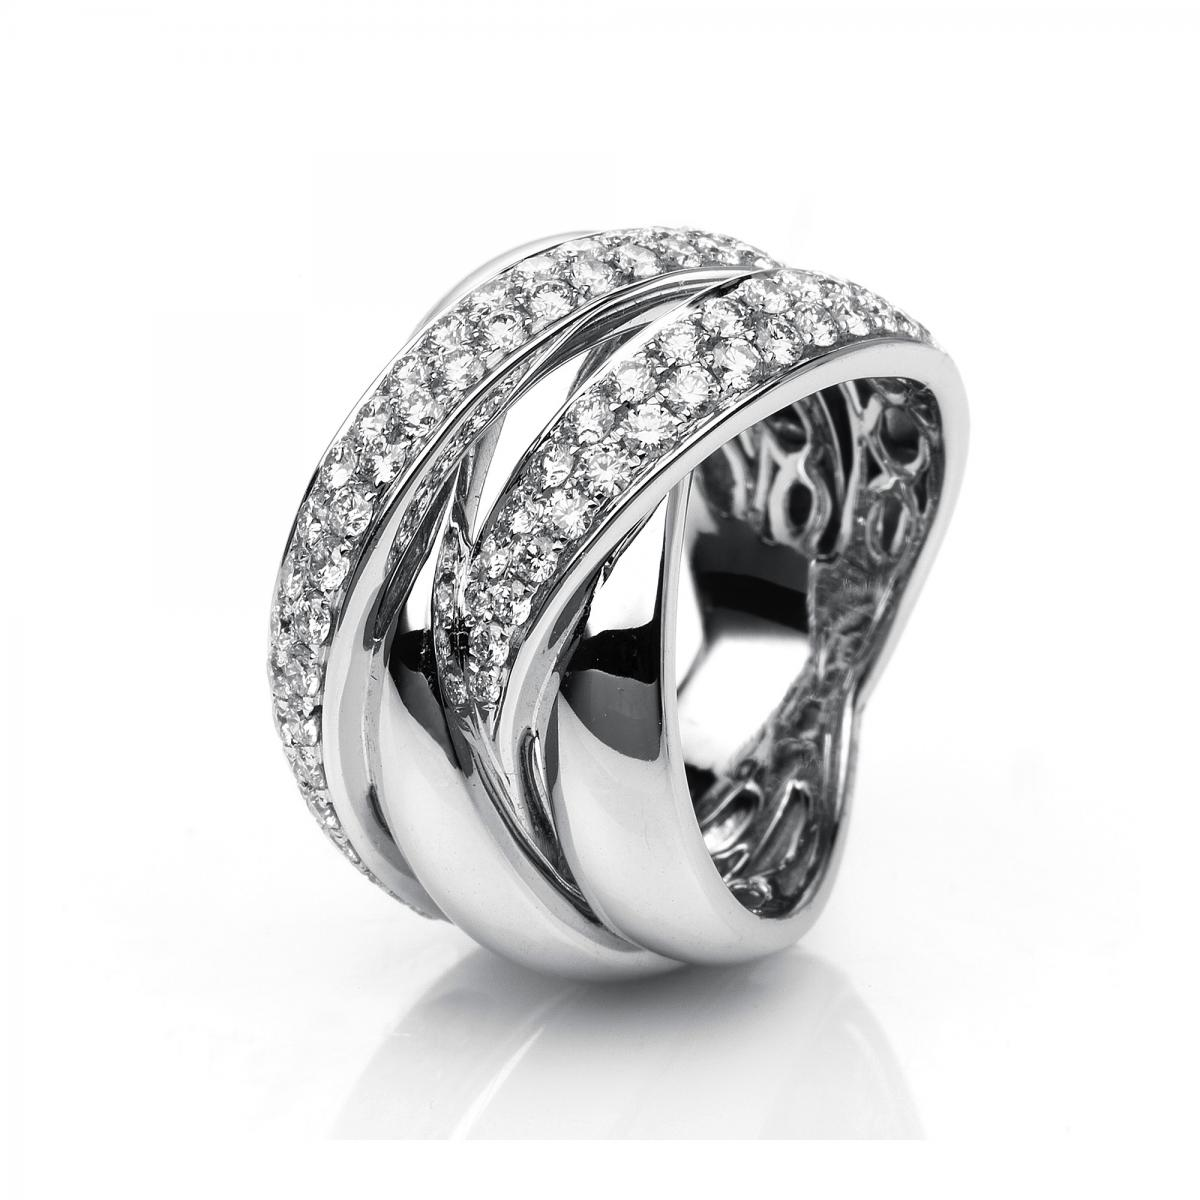 Ring white gold 18 ct with 77 brilliants ca. 1,40 ct, size 55